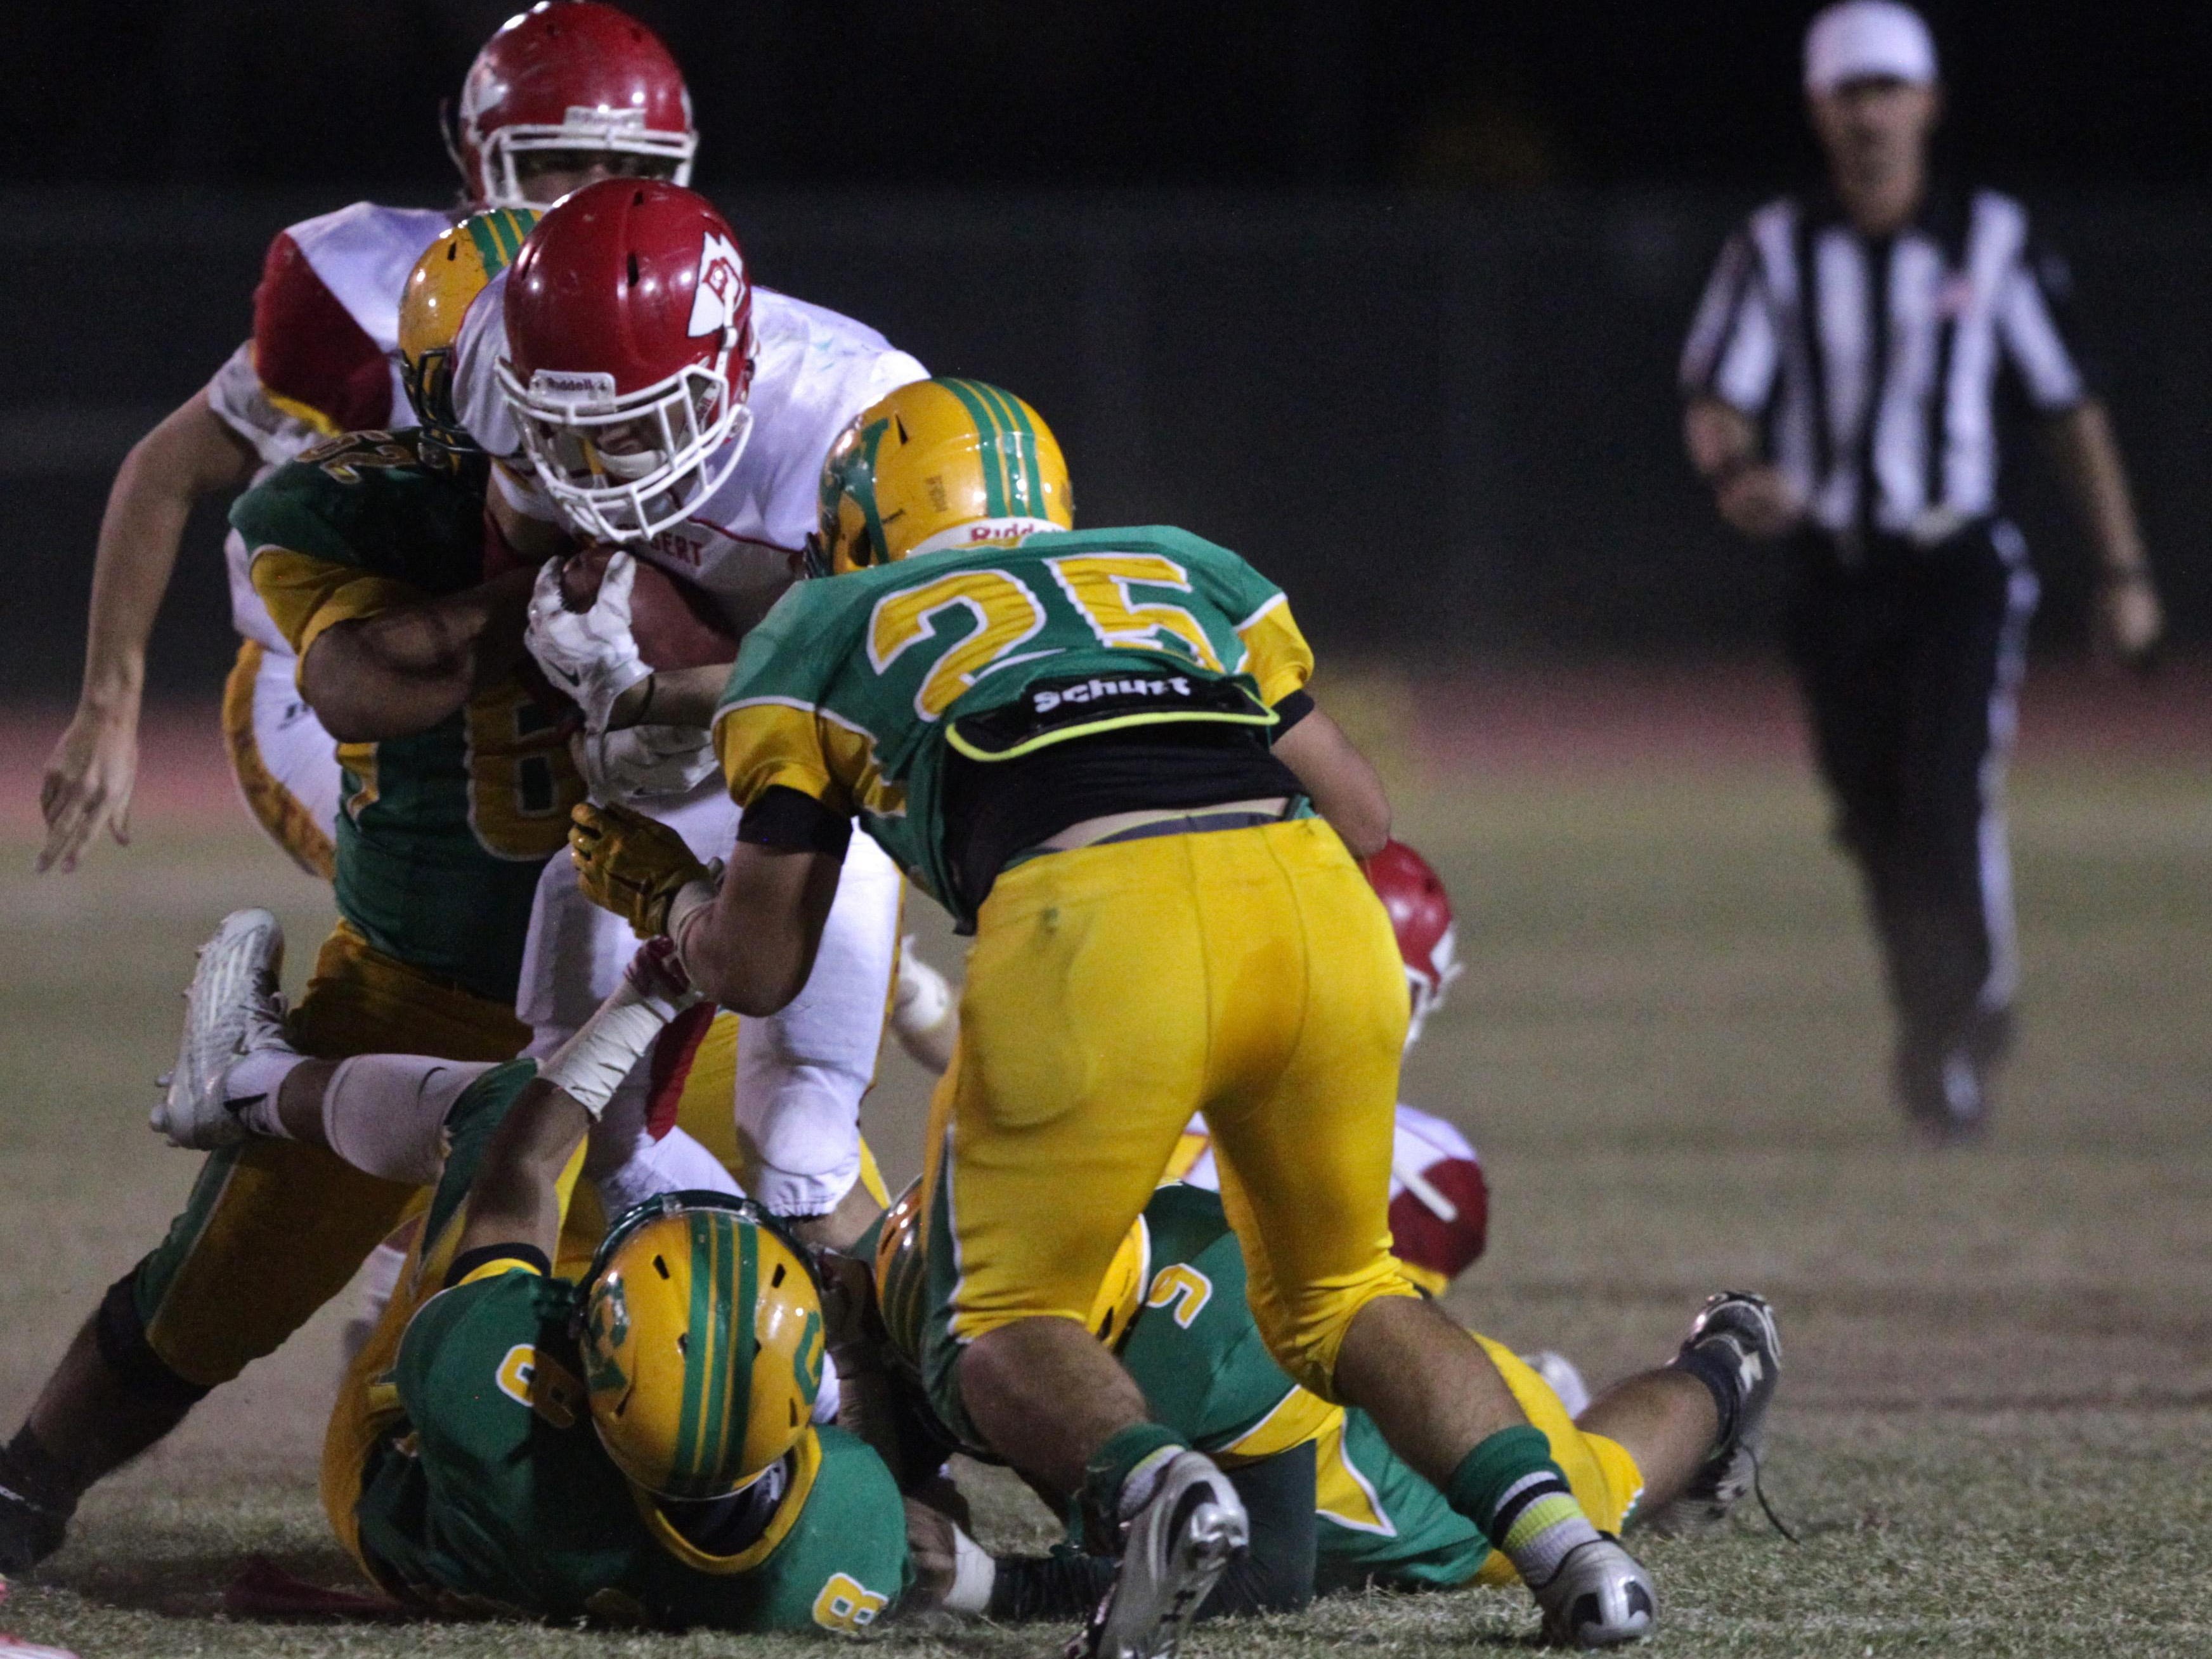 The Coachella Valley Arabs hosted the Palm Desert Aztecs for a football game on Friday.